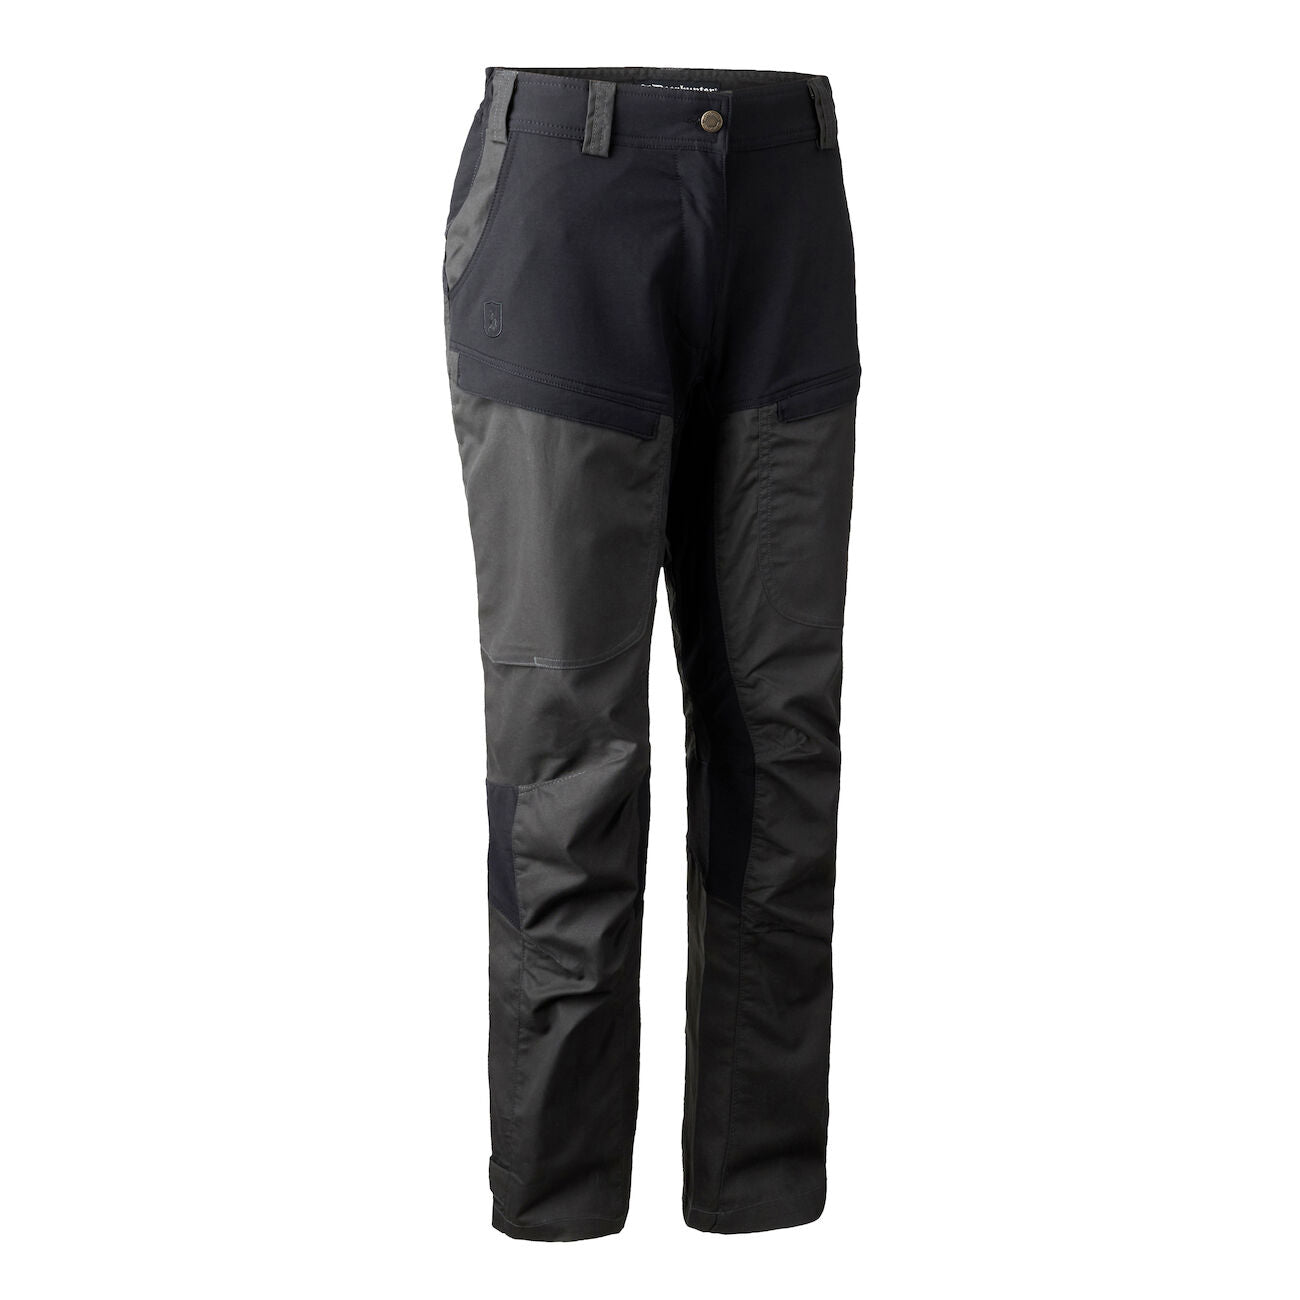 Deerhunter Lady Ann Trousers - Black Ink